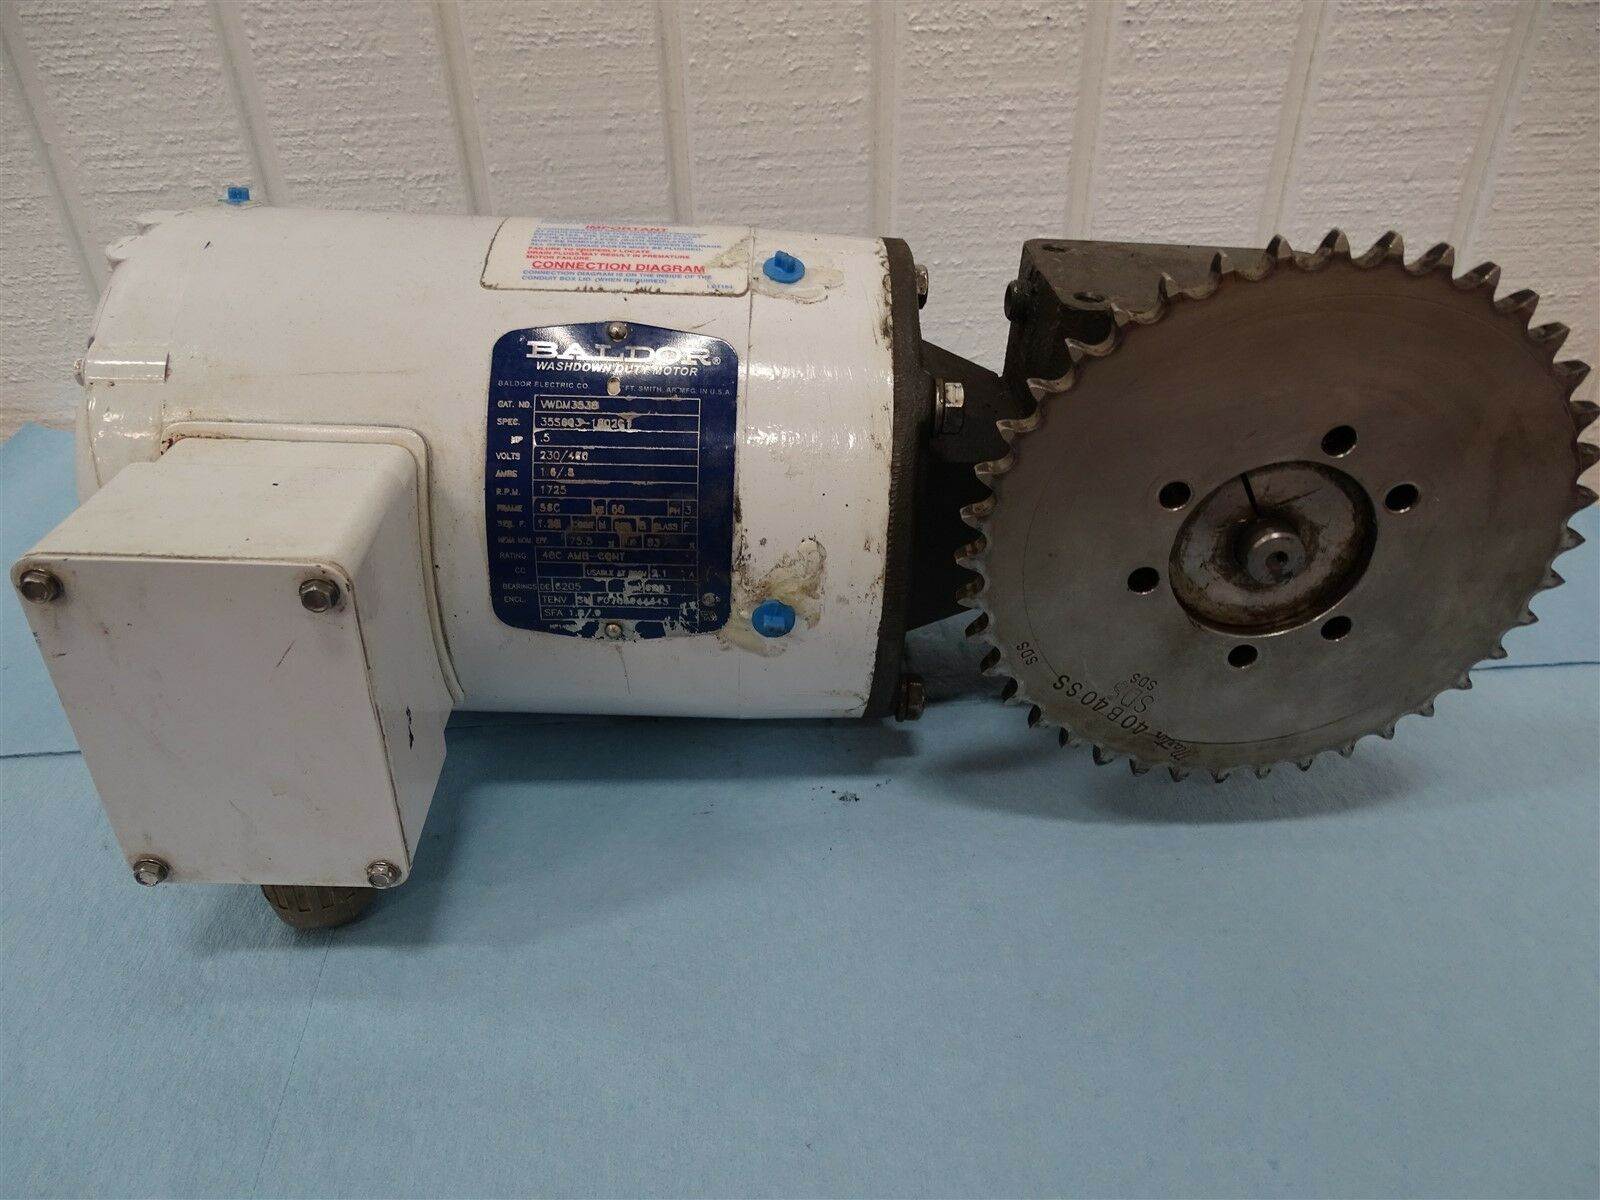 Baldor VWDM3538 Electric Motor .5HP 1725RPM 3PH Fr.56C 230/460V 1.6/.8A 60HZ